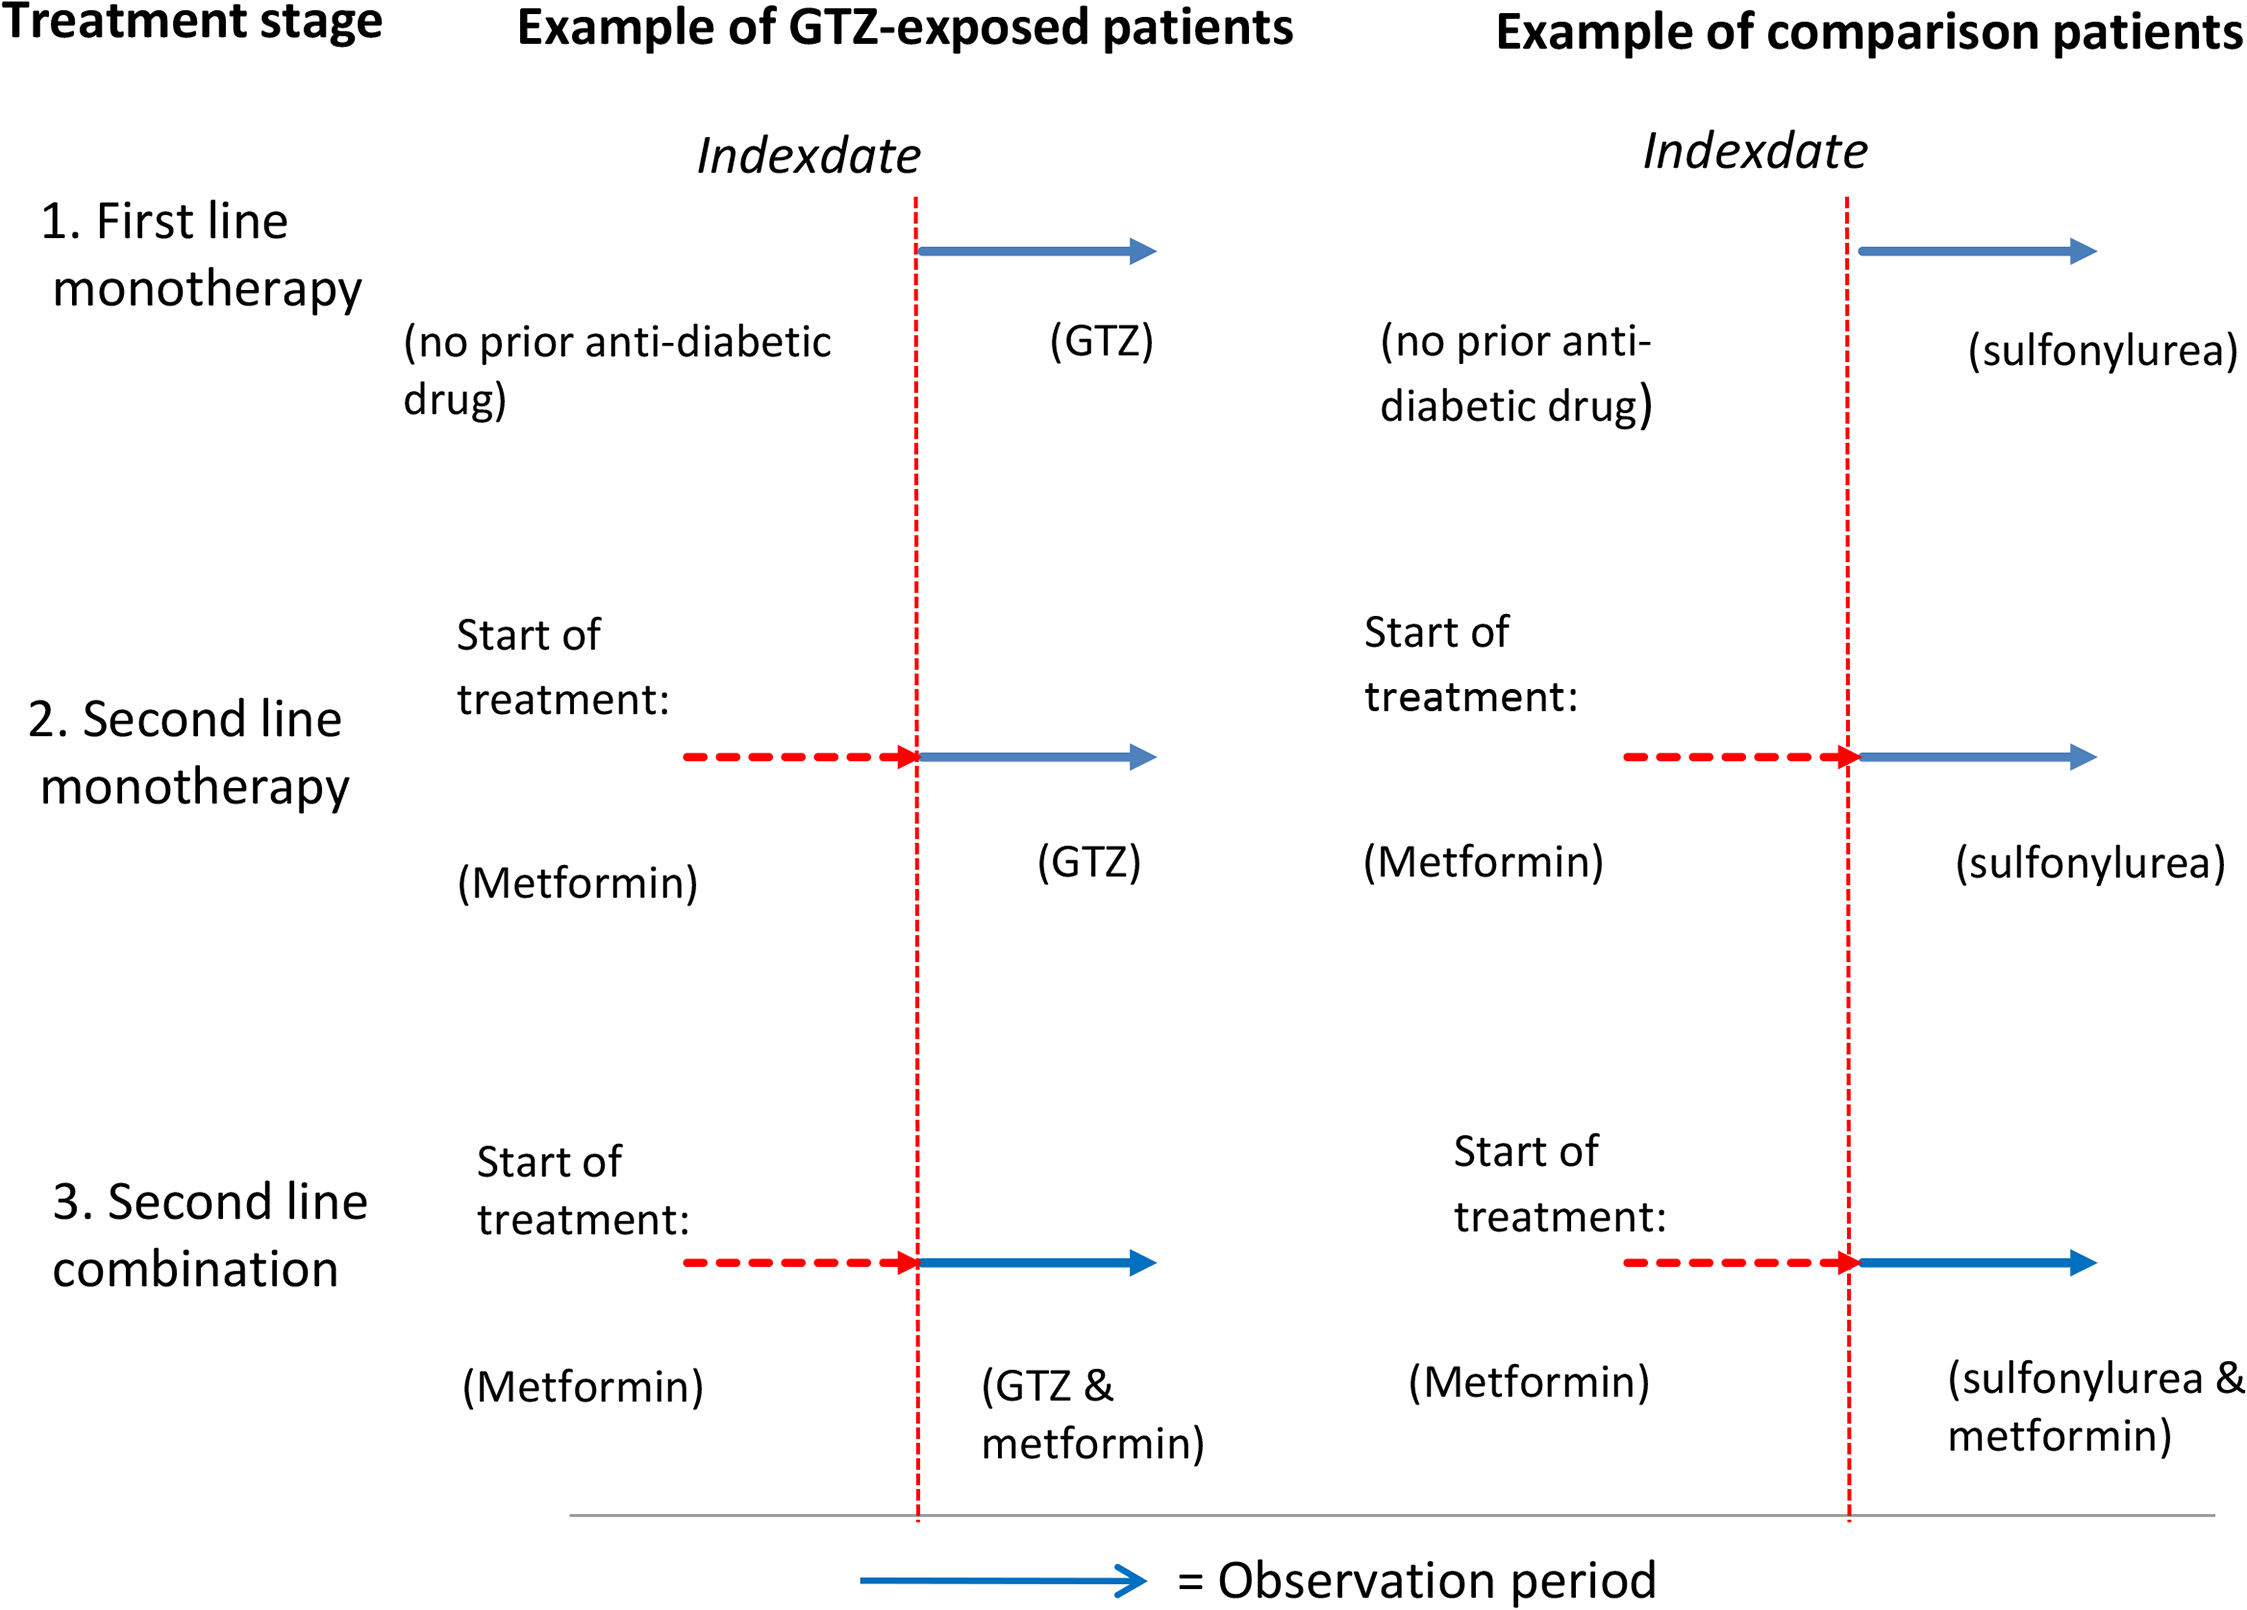 Graphical representation of the three different treatment stages: Users of GTZ drugs and other antidiabetic drugs classified according to first- or second-line mono- or combination therapy at the index date.